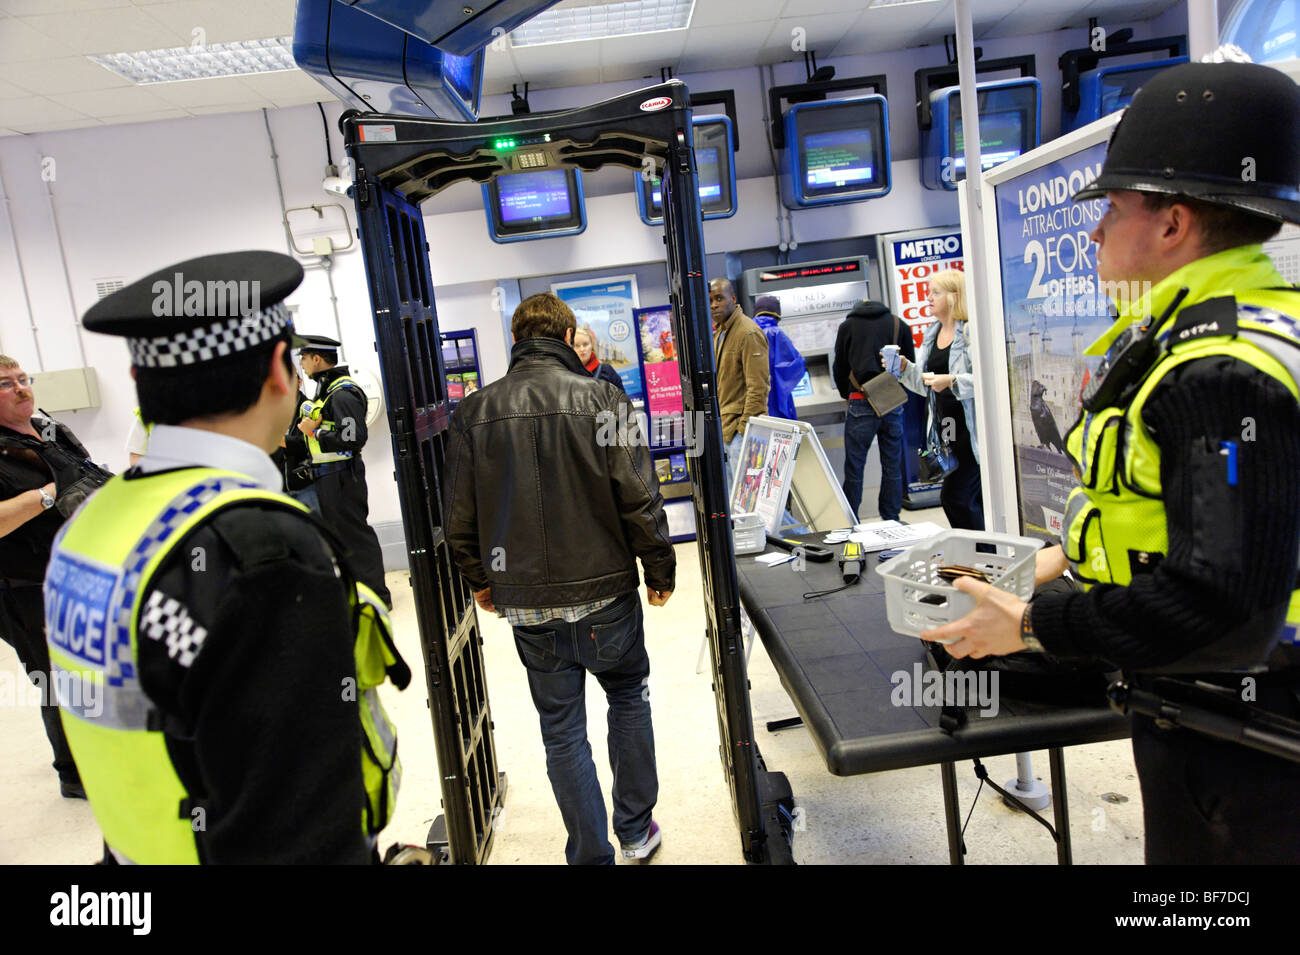 British Transport Police using the 'Knife Arch' detector during routine neighborhood policing at Lewisham - Stock Image